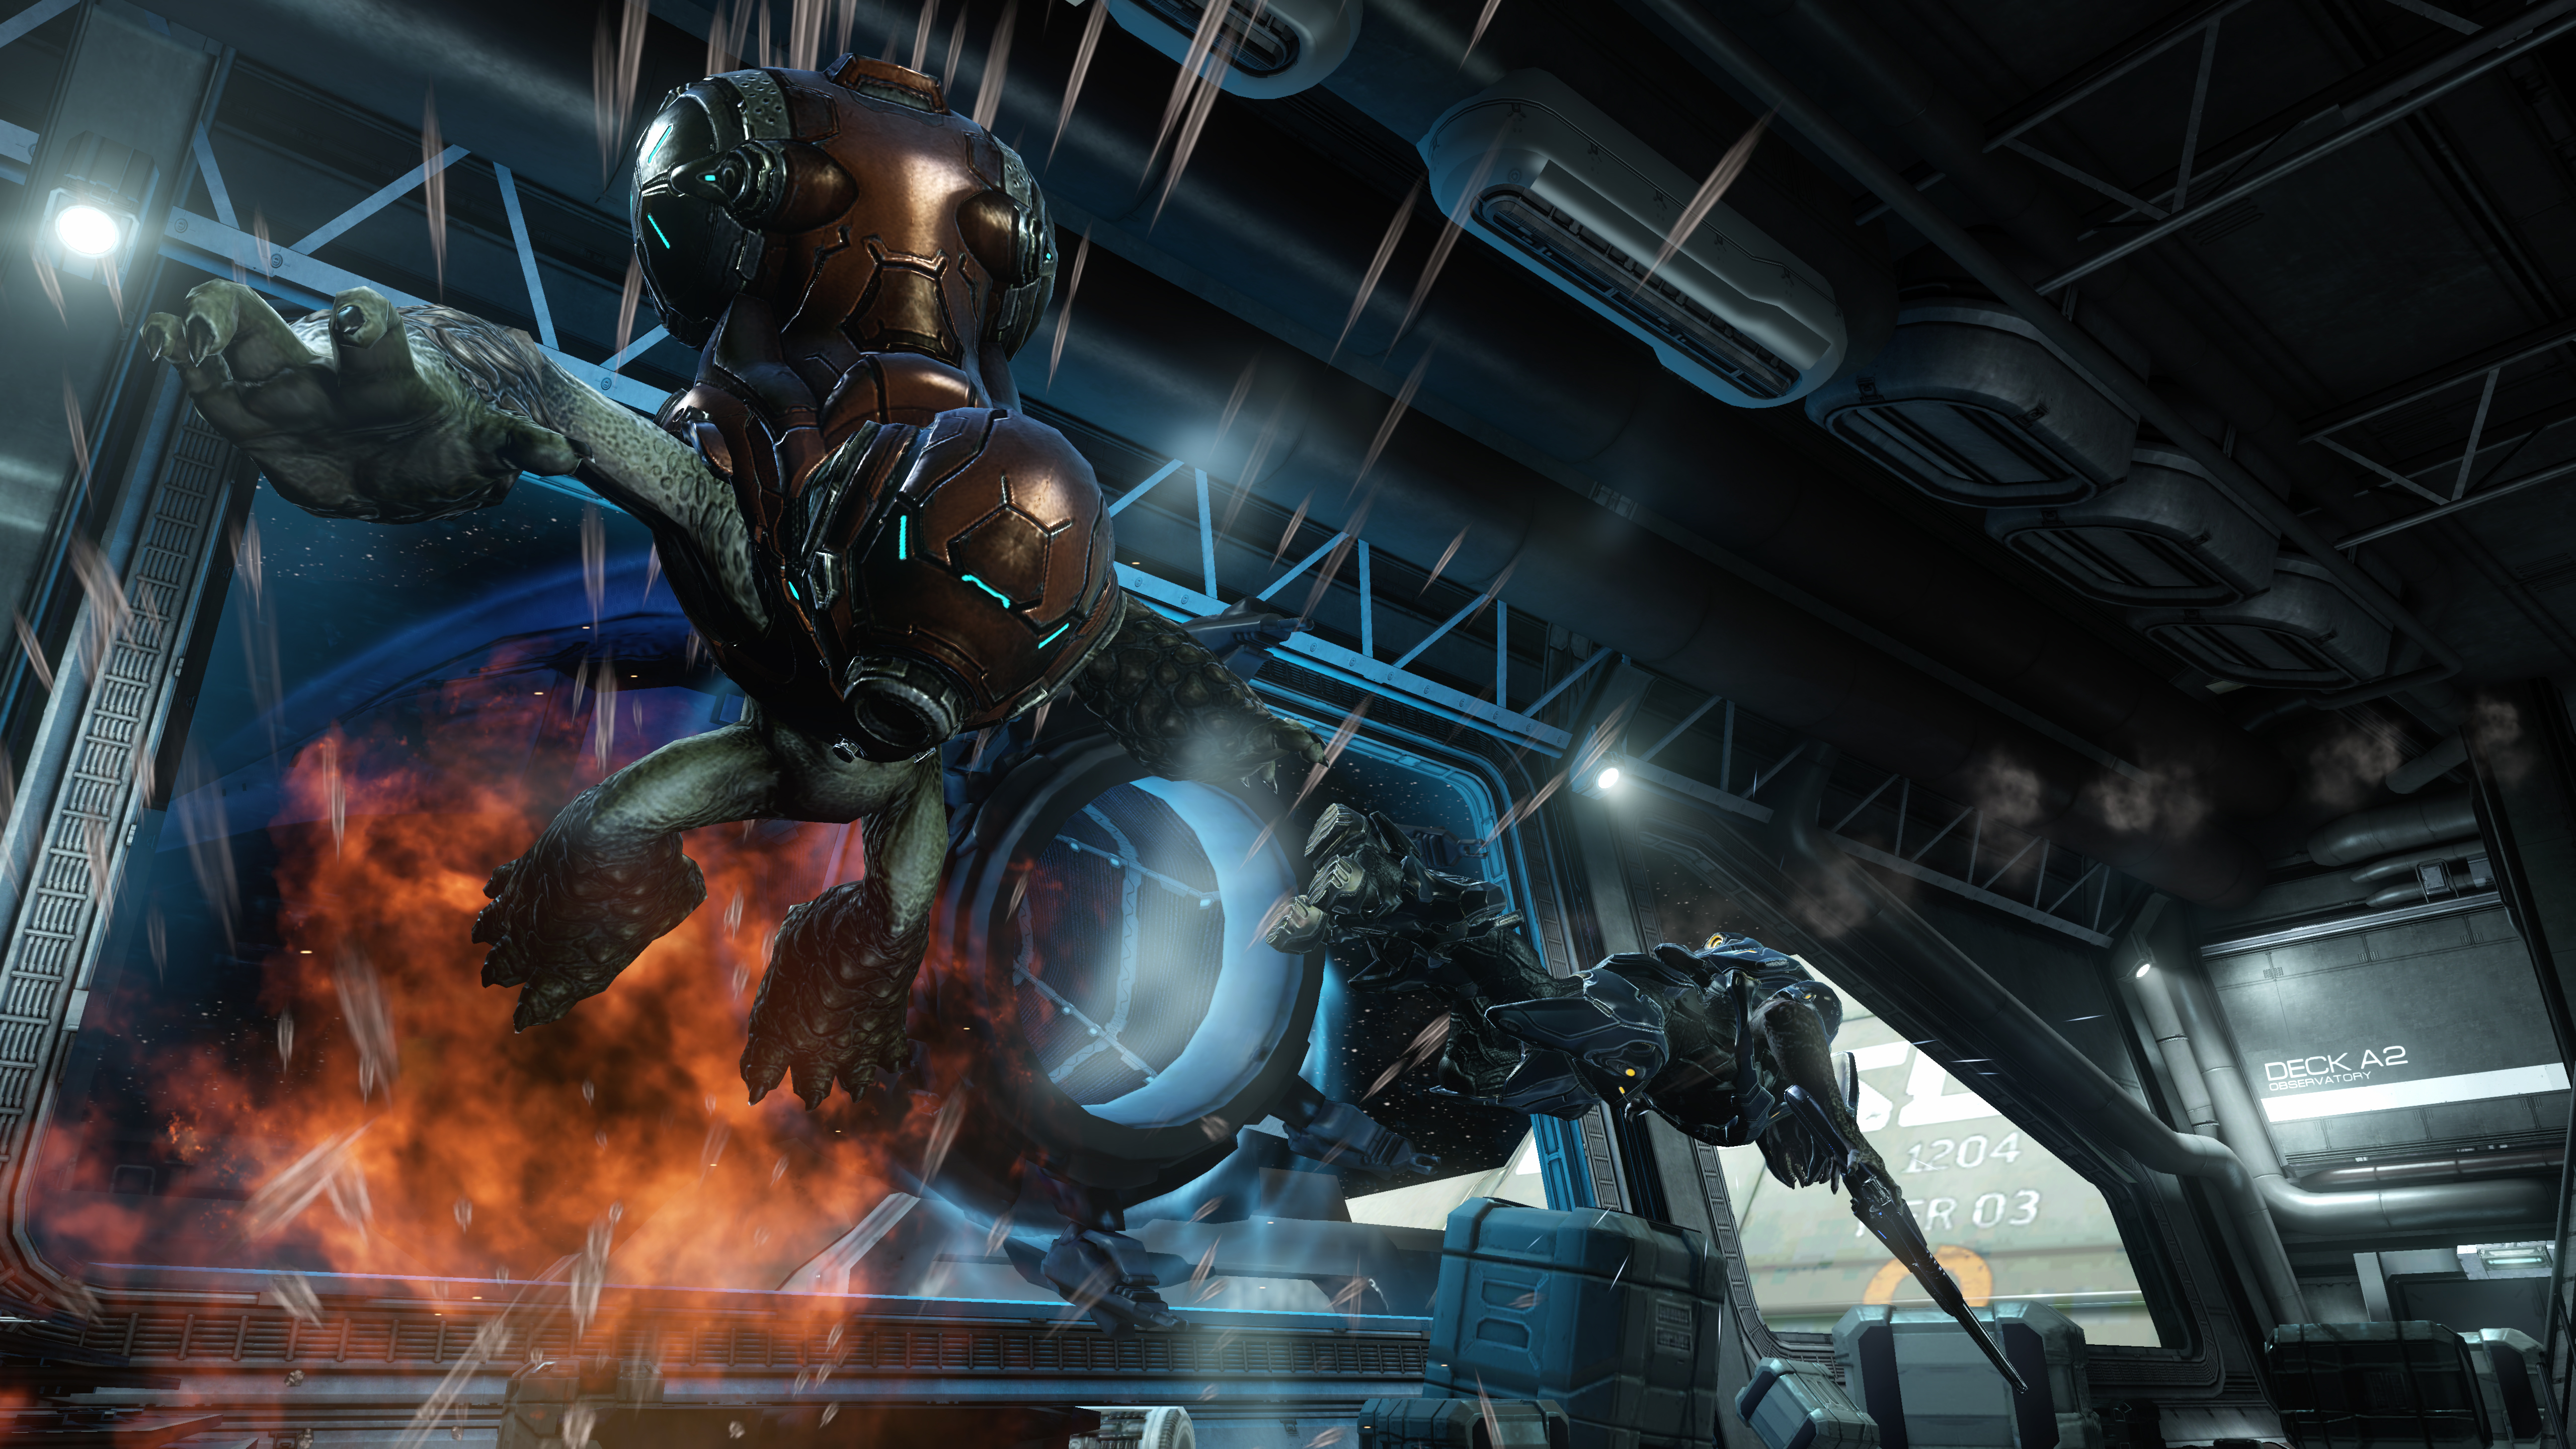 Halo 4 redefines iconic franchise with halo infinity - Halo 4 photos ...